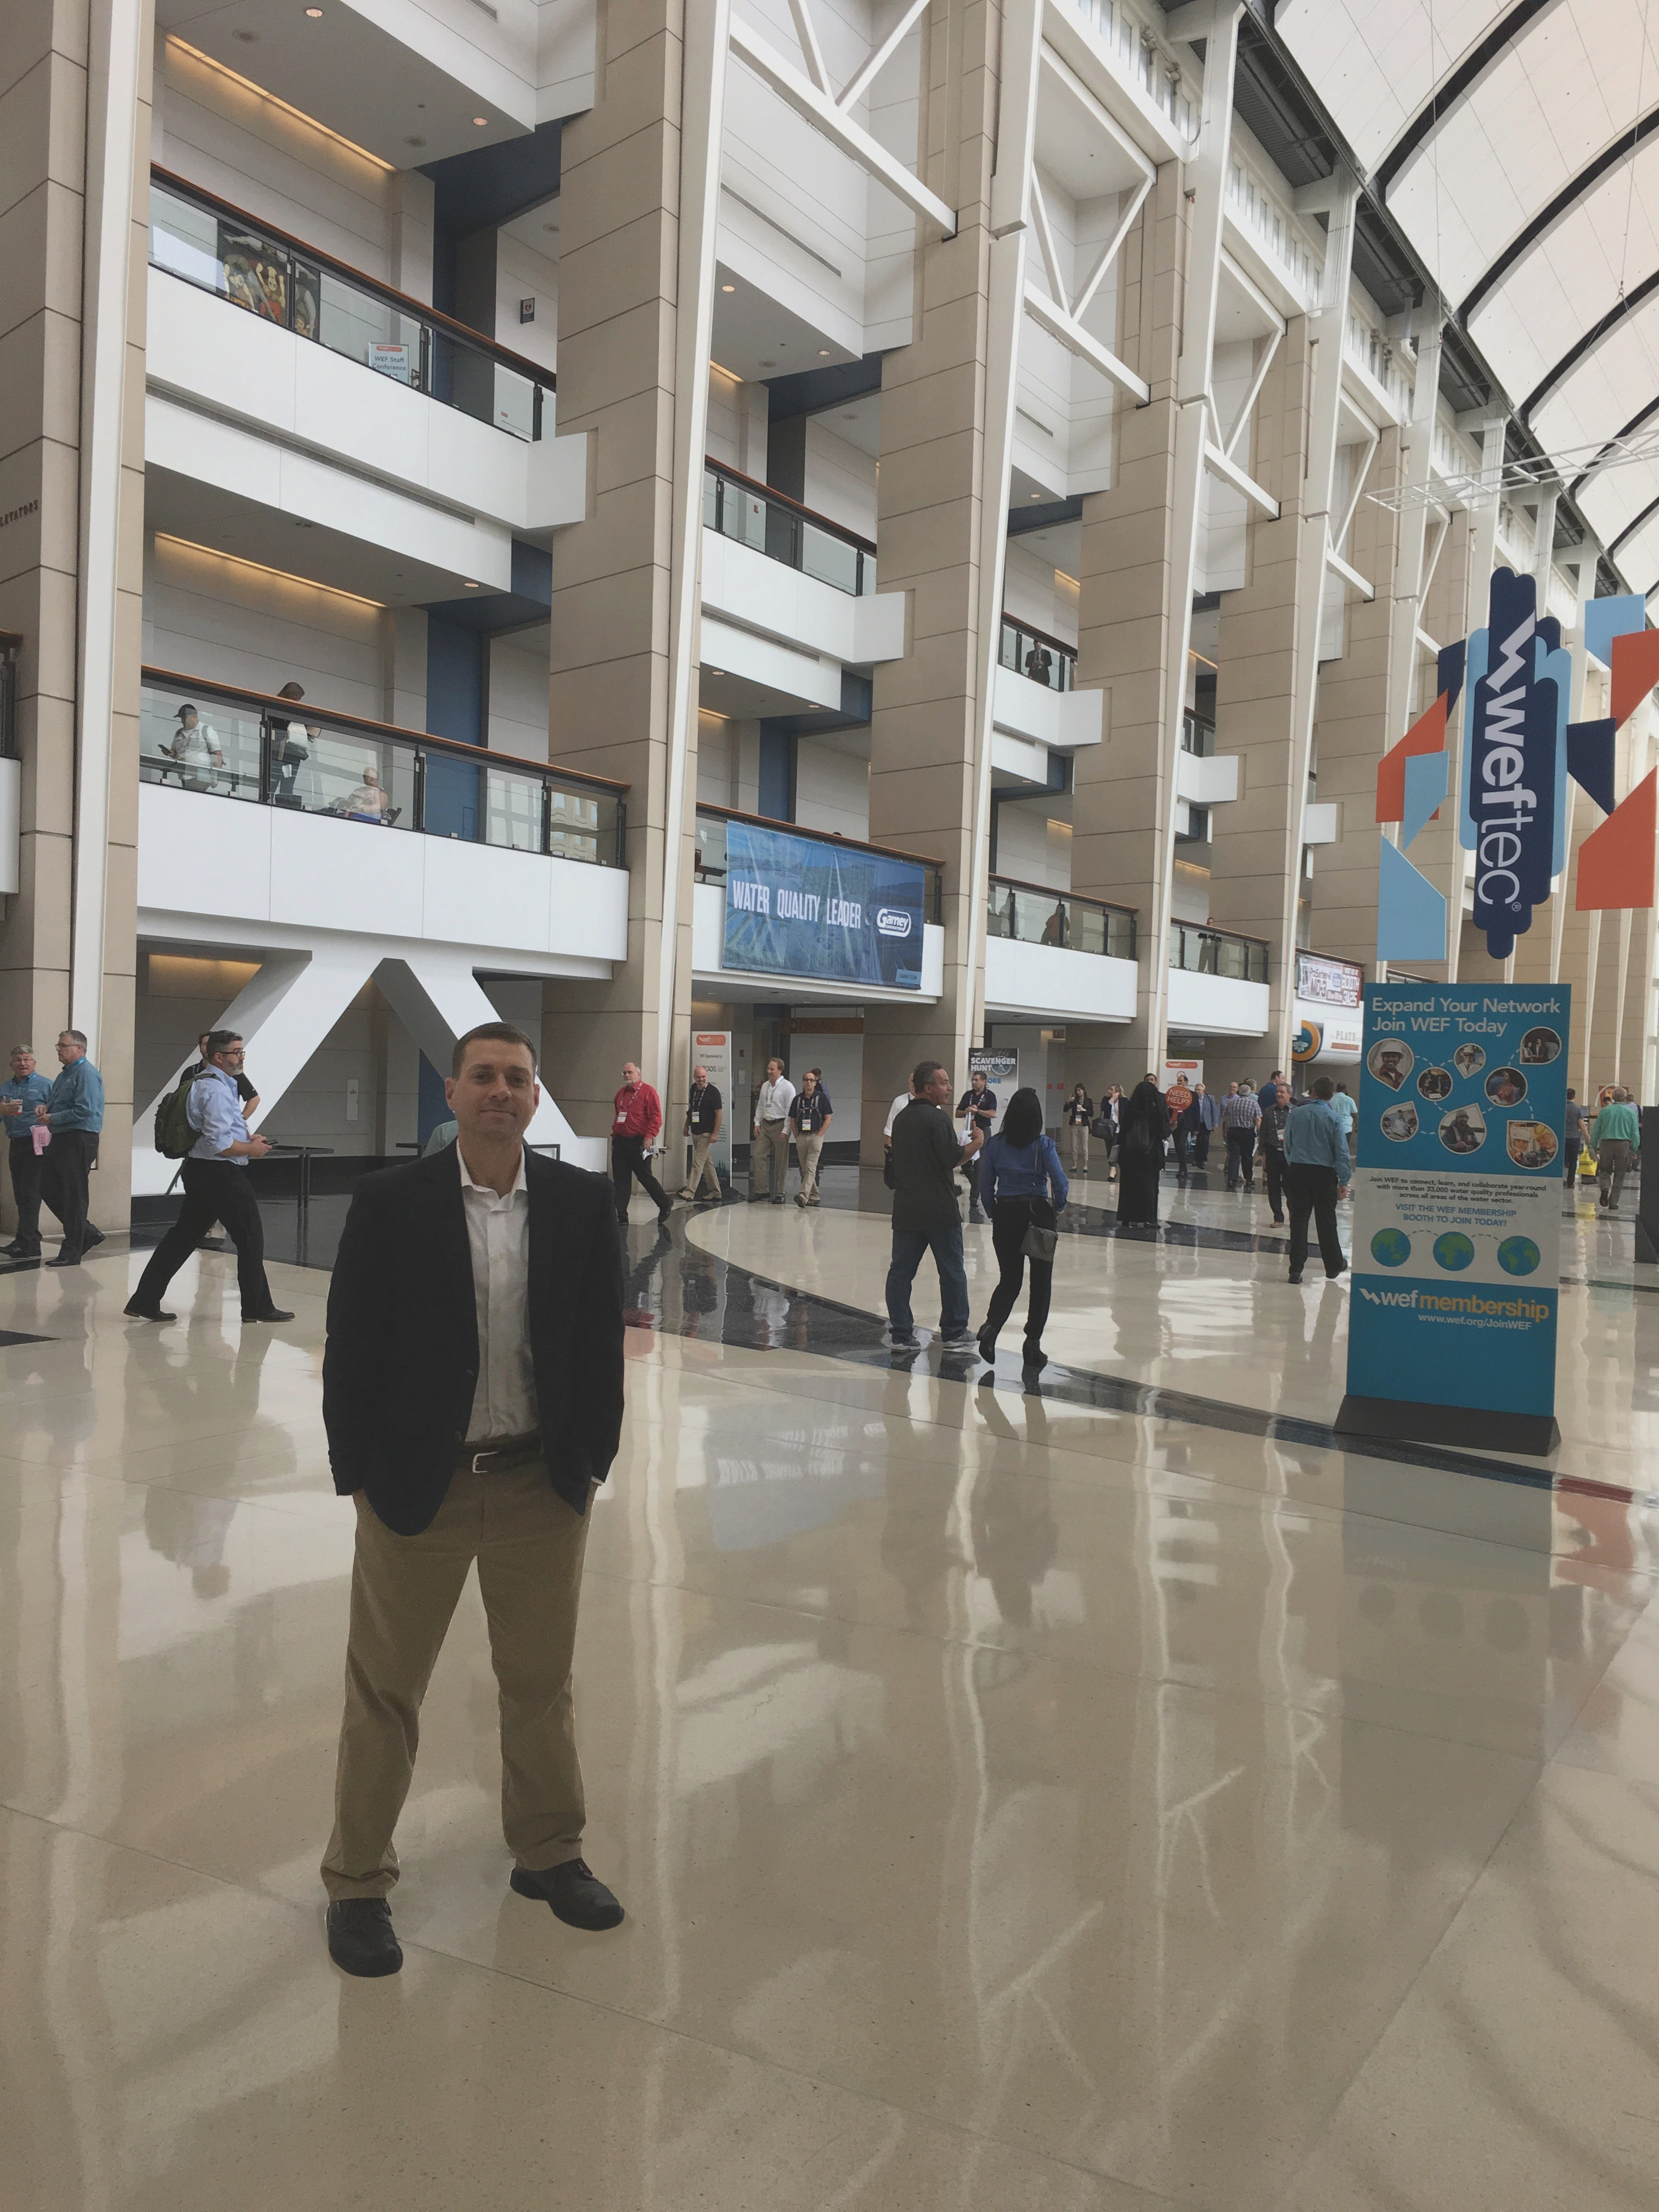 Brent Mayes attends WEFTEC to scope out the water treatment industry's innovative trends.